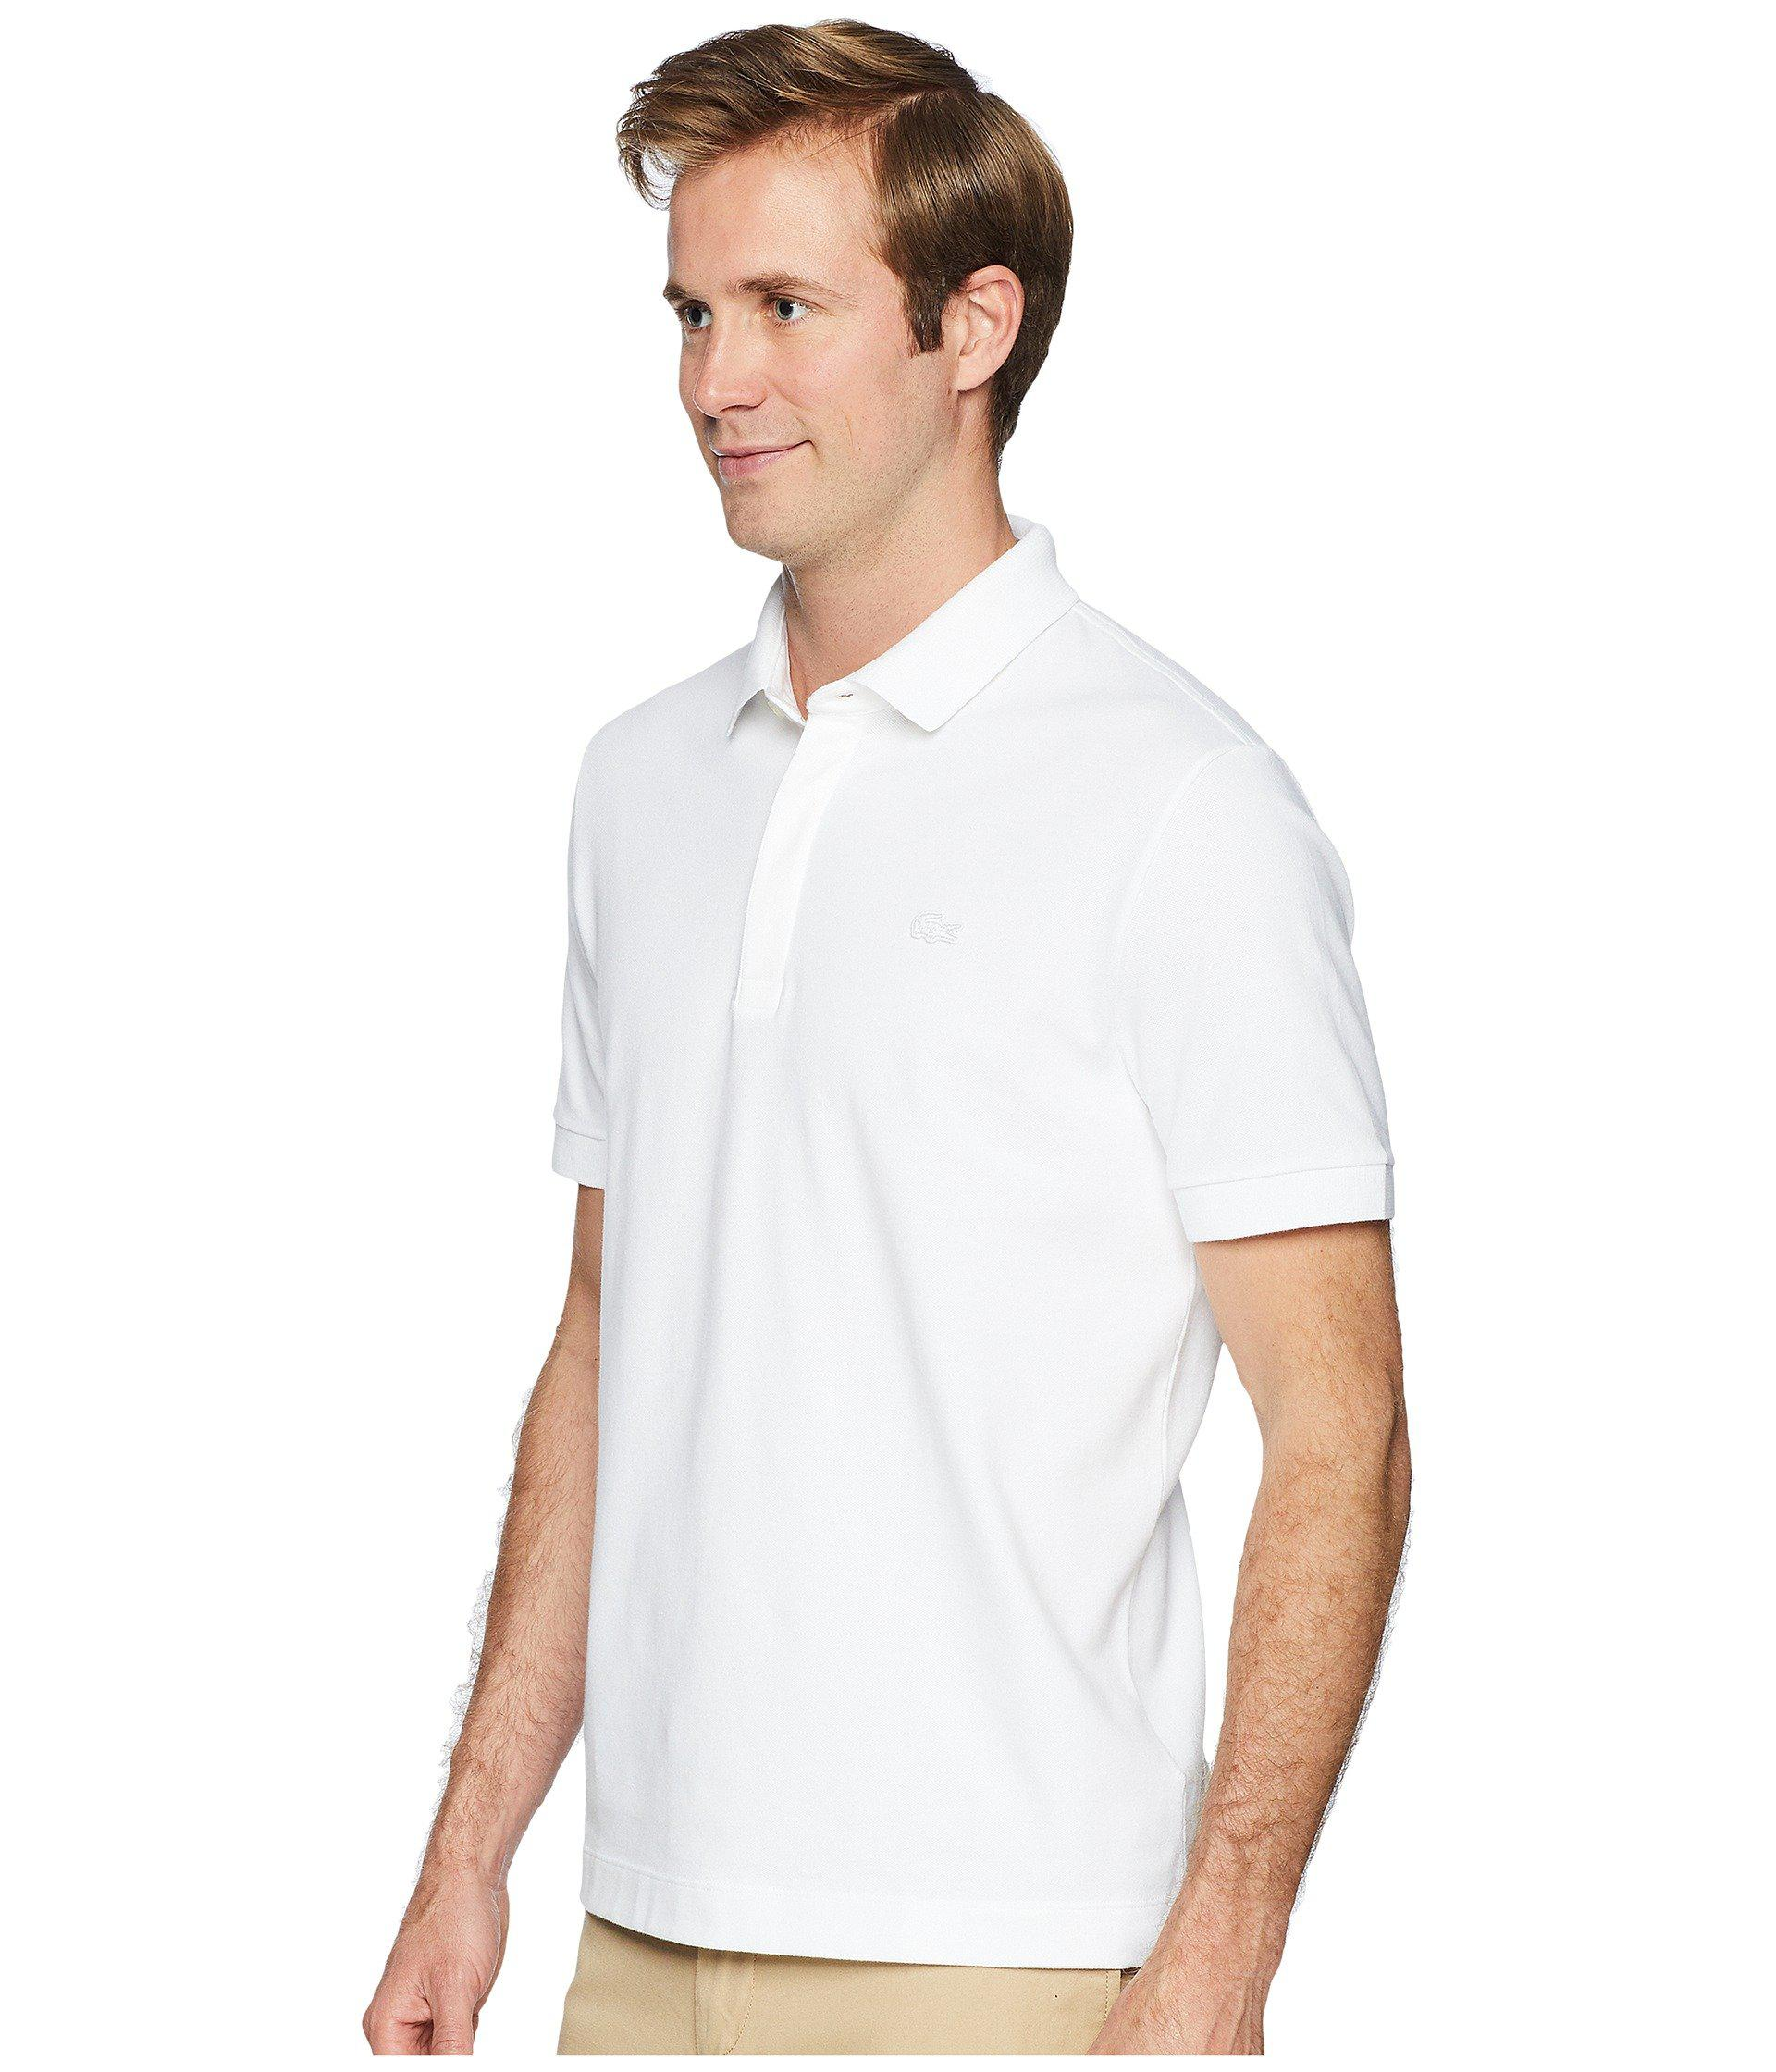 3619184faab0 Lyst - Lacoste Short Sleeve Solid Stretch Pique Regular (navy Blue) Men s  Short Sleeve Pullover in White for Men